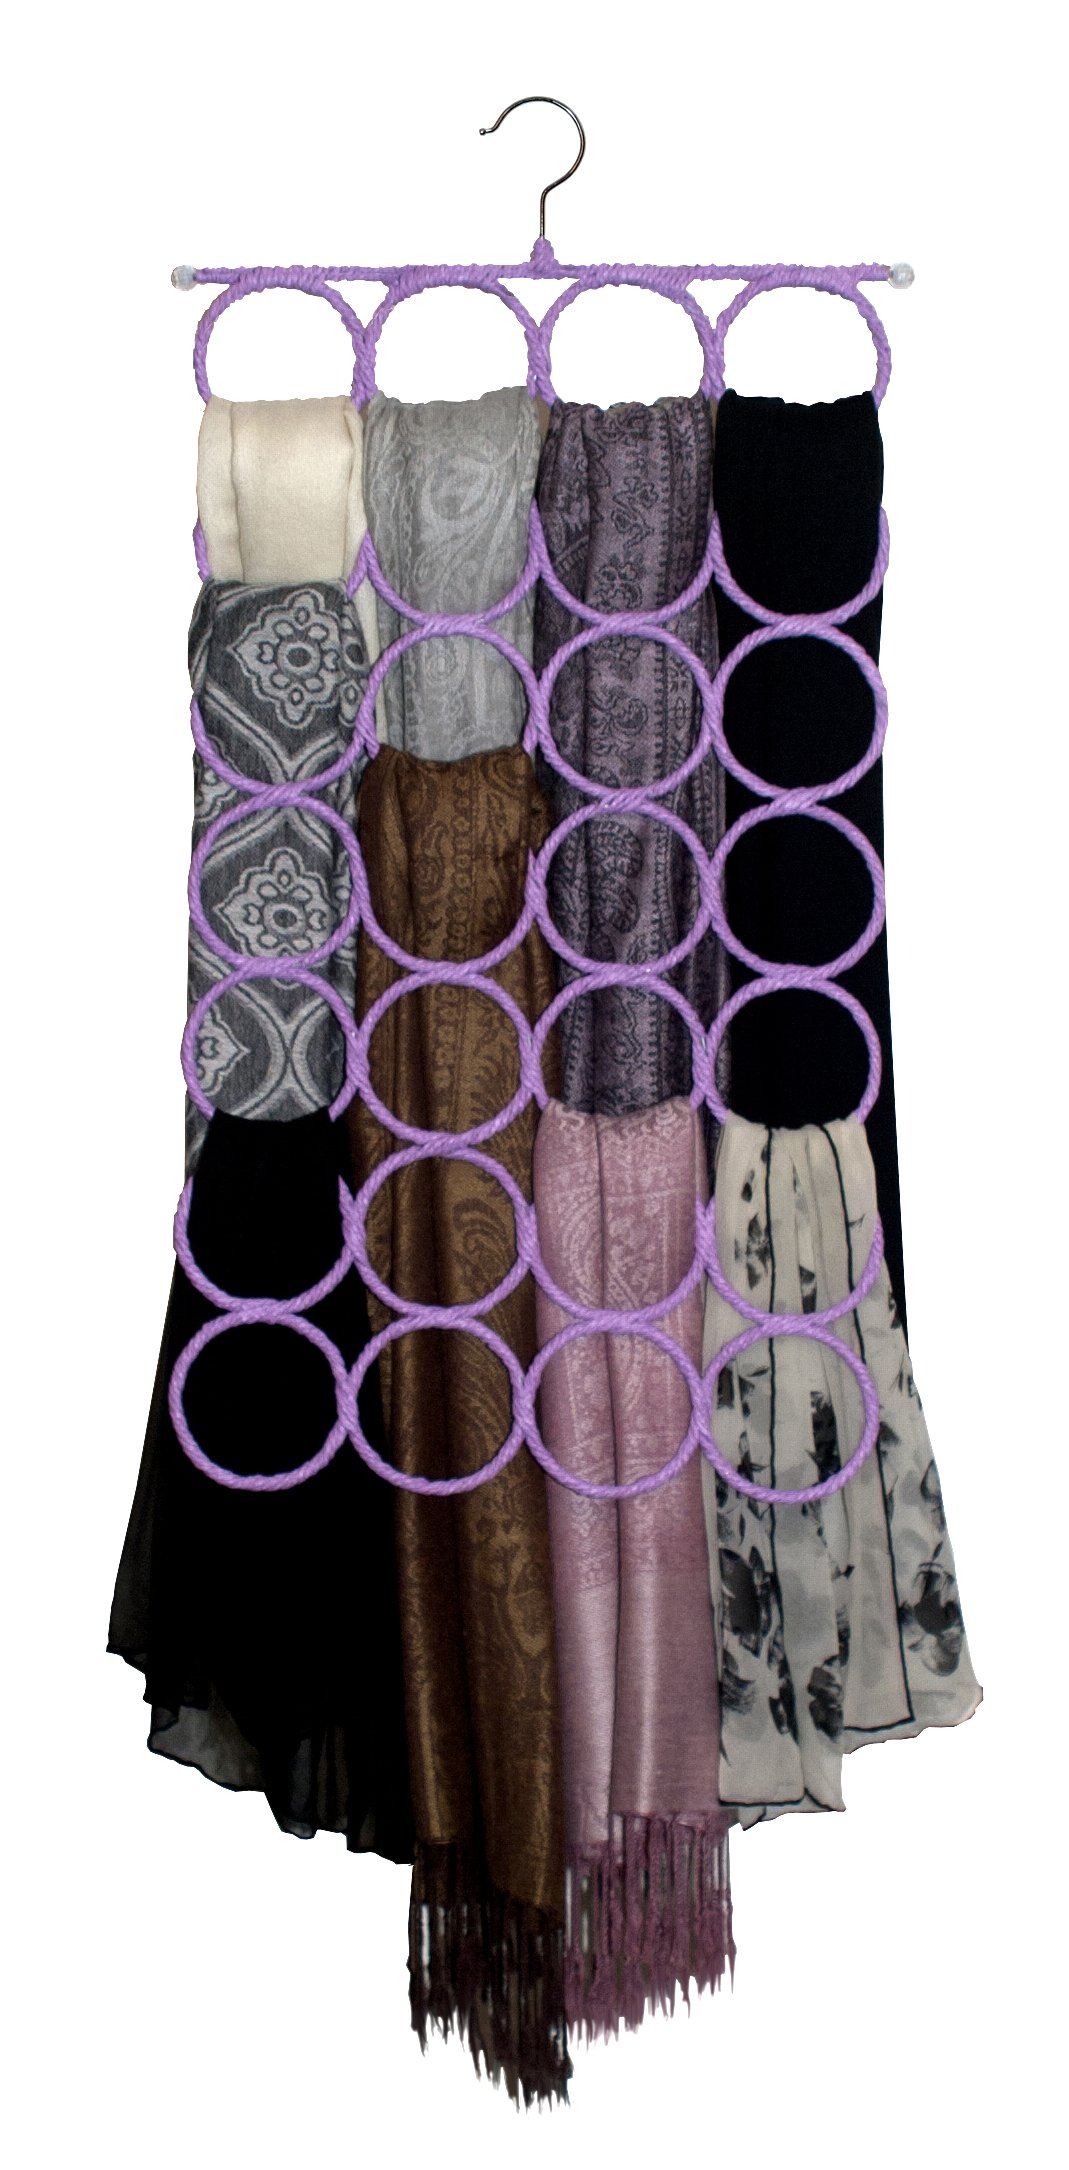 page obtain rack vibo life tie trouser ties shoe to baskets optimum drawer out suit pull range lateral and portfolio elite organization hangers racks apclsp mounted belt outs the side while